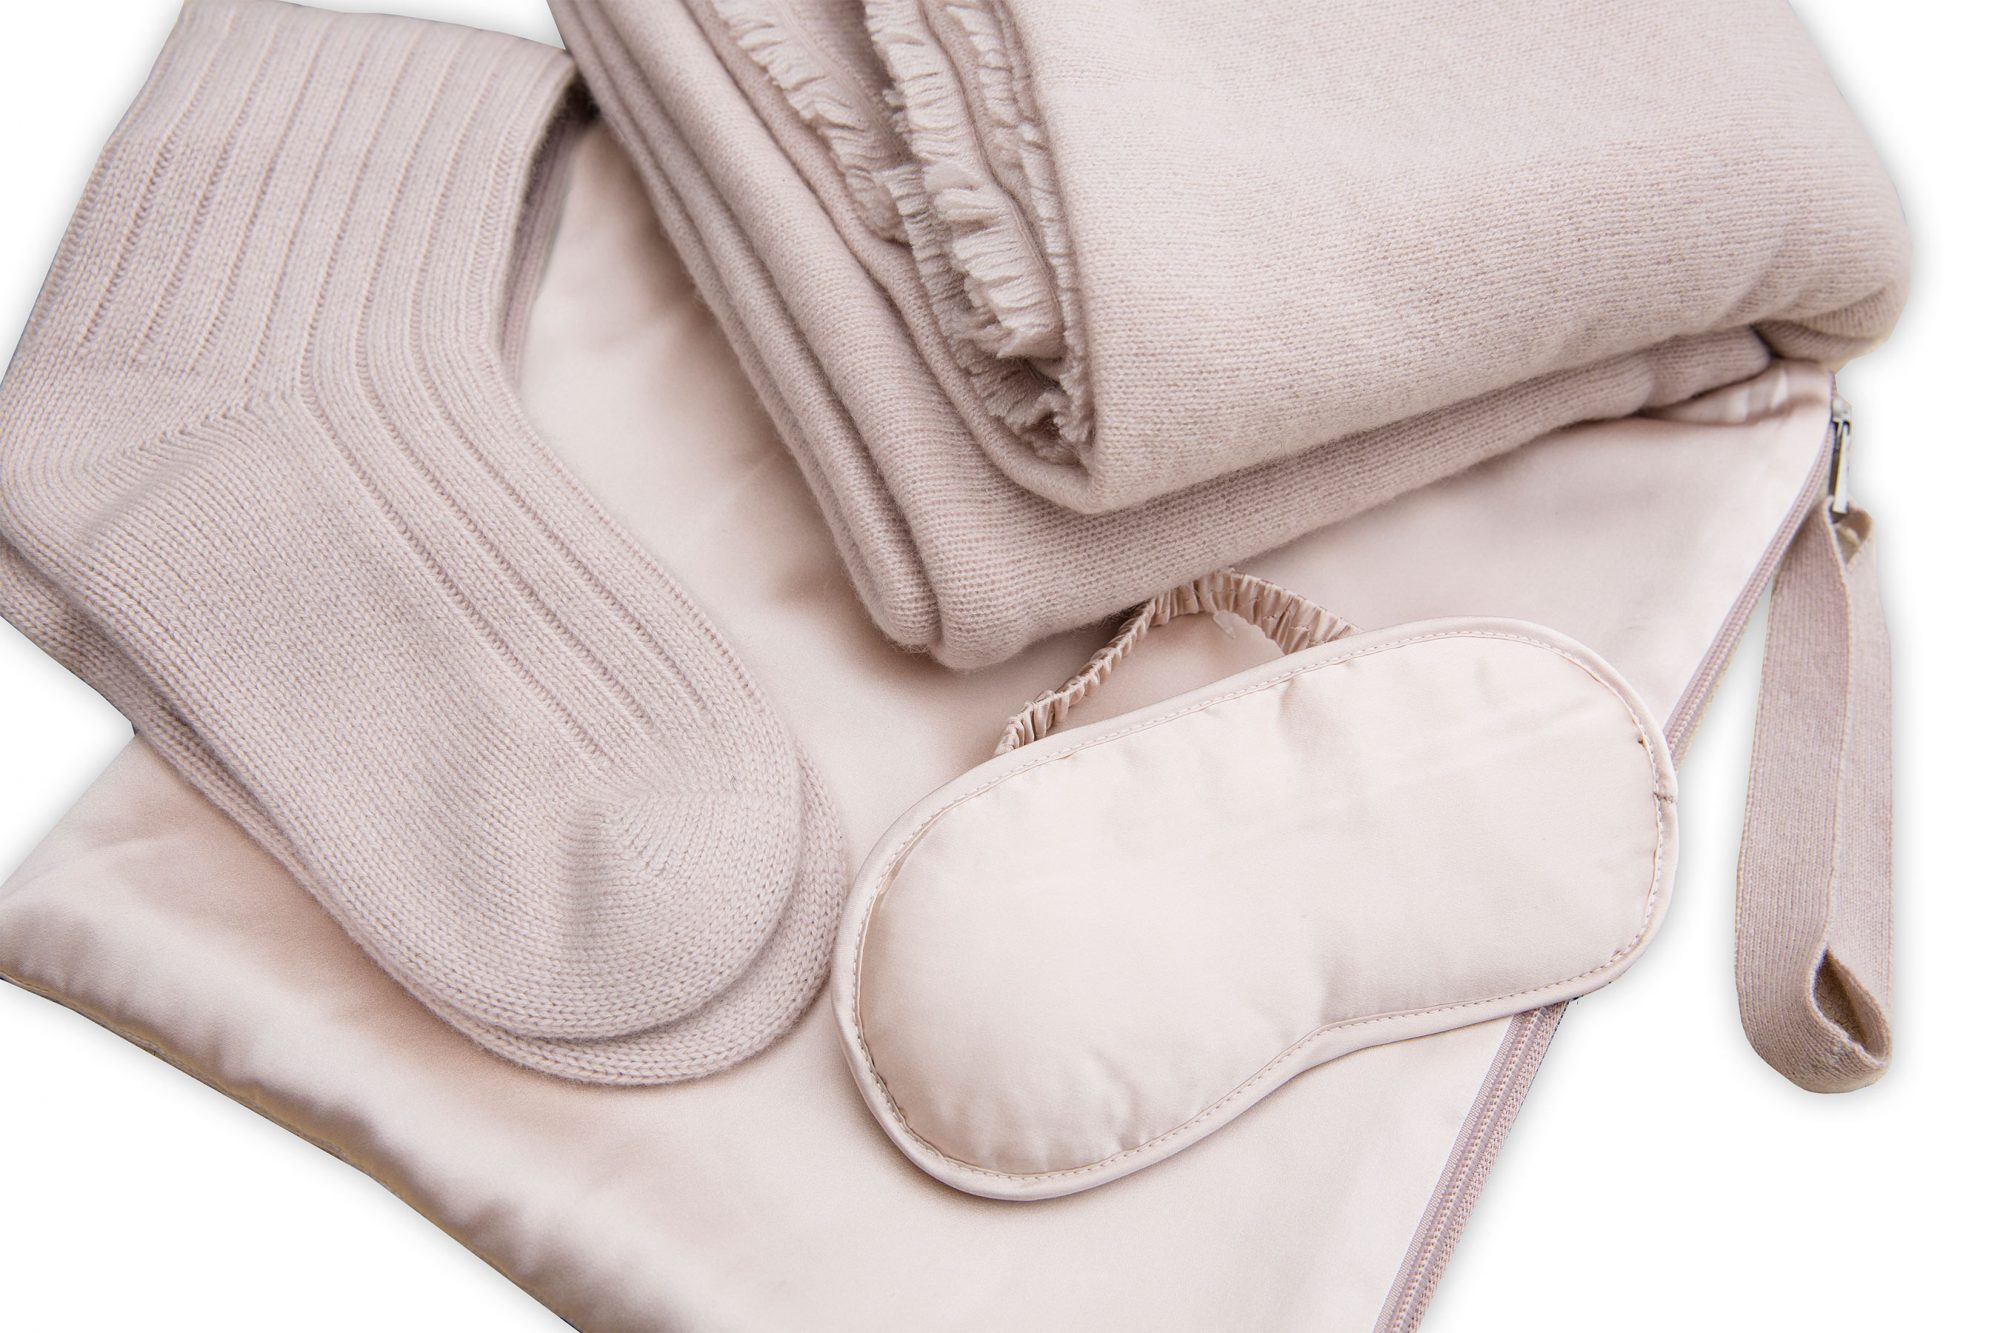 PEOPLE Editor's gift guide gallery (Naked Cashmere)